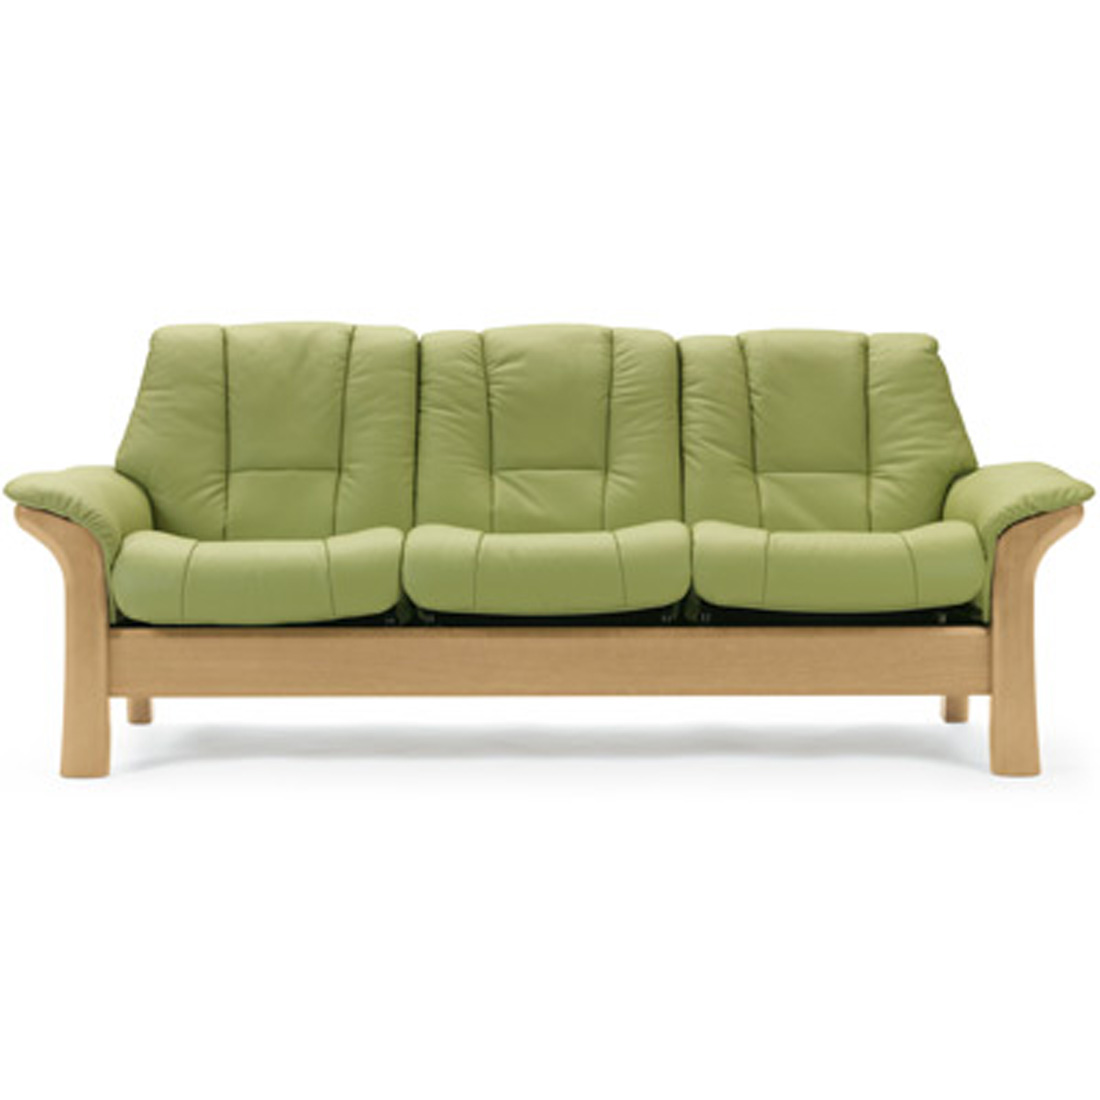 Loveseat Sofa A Stylish And Comfortable Choice For Sweet Homes 2 Loveseat Sofa A Stylish And